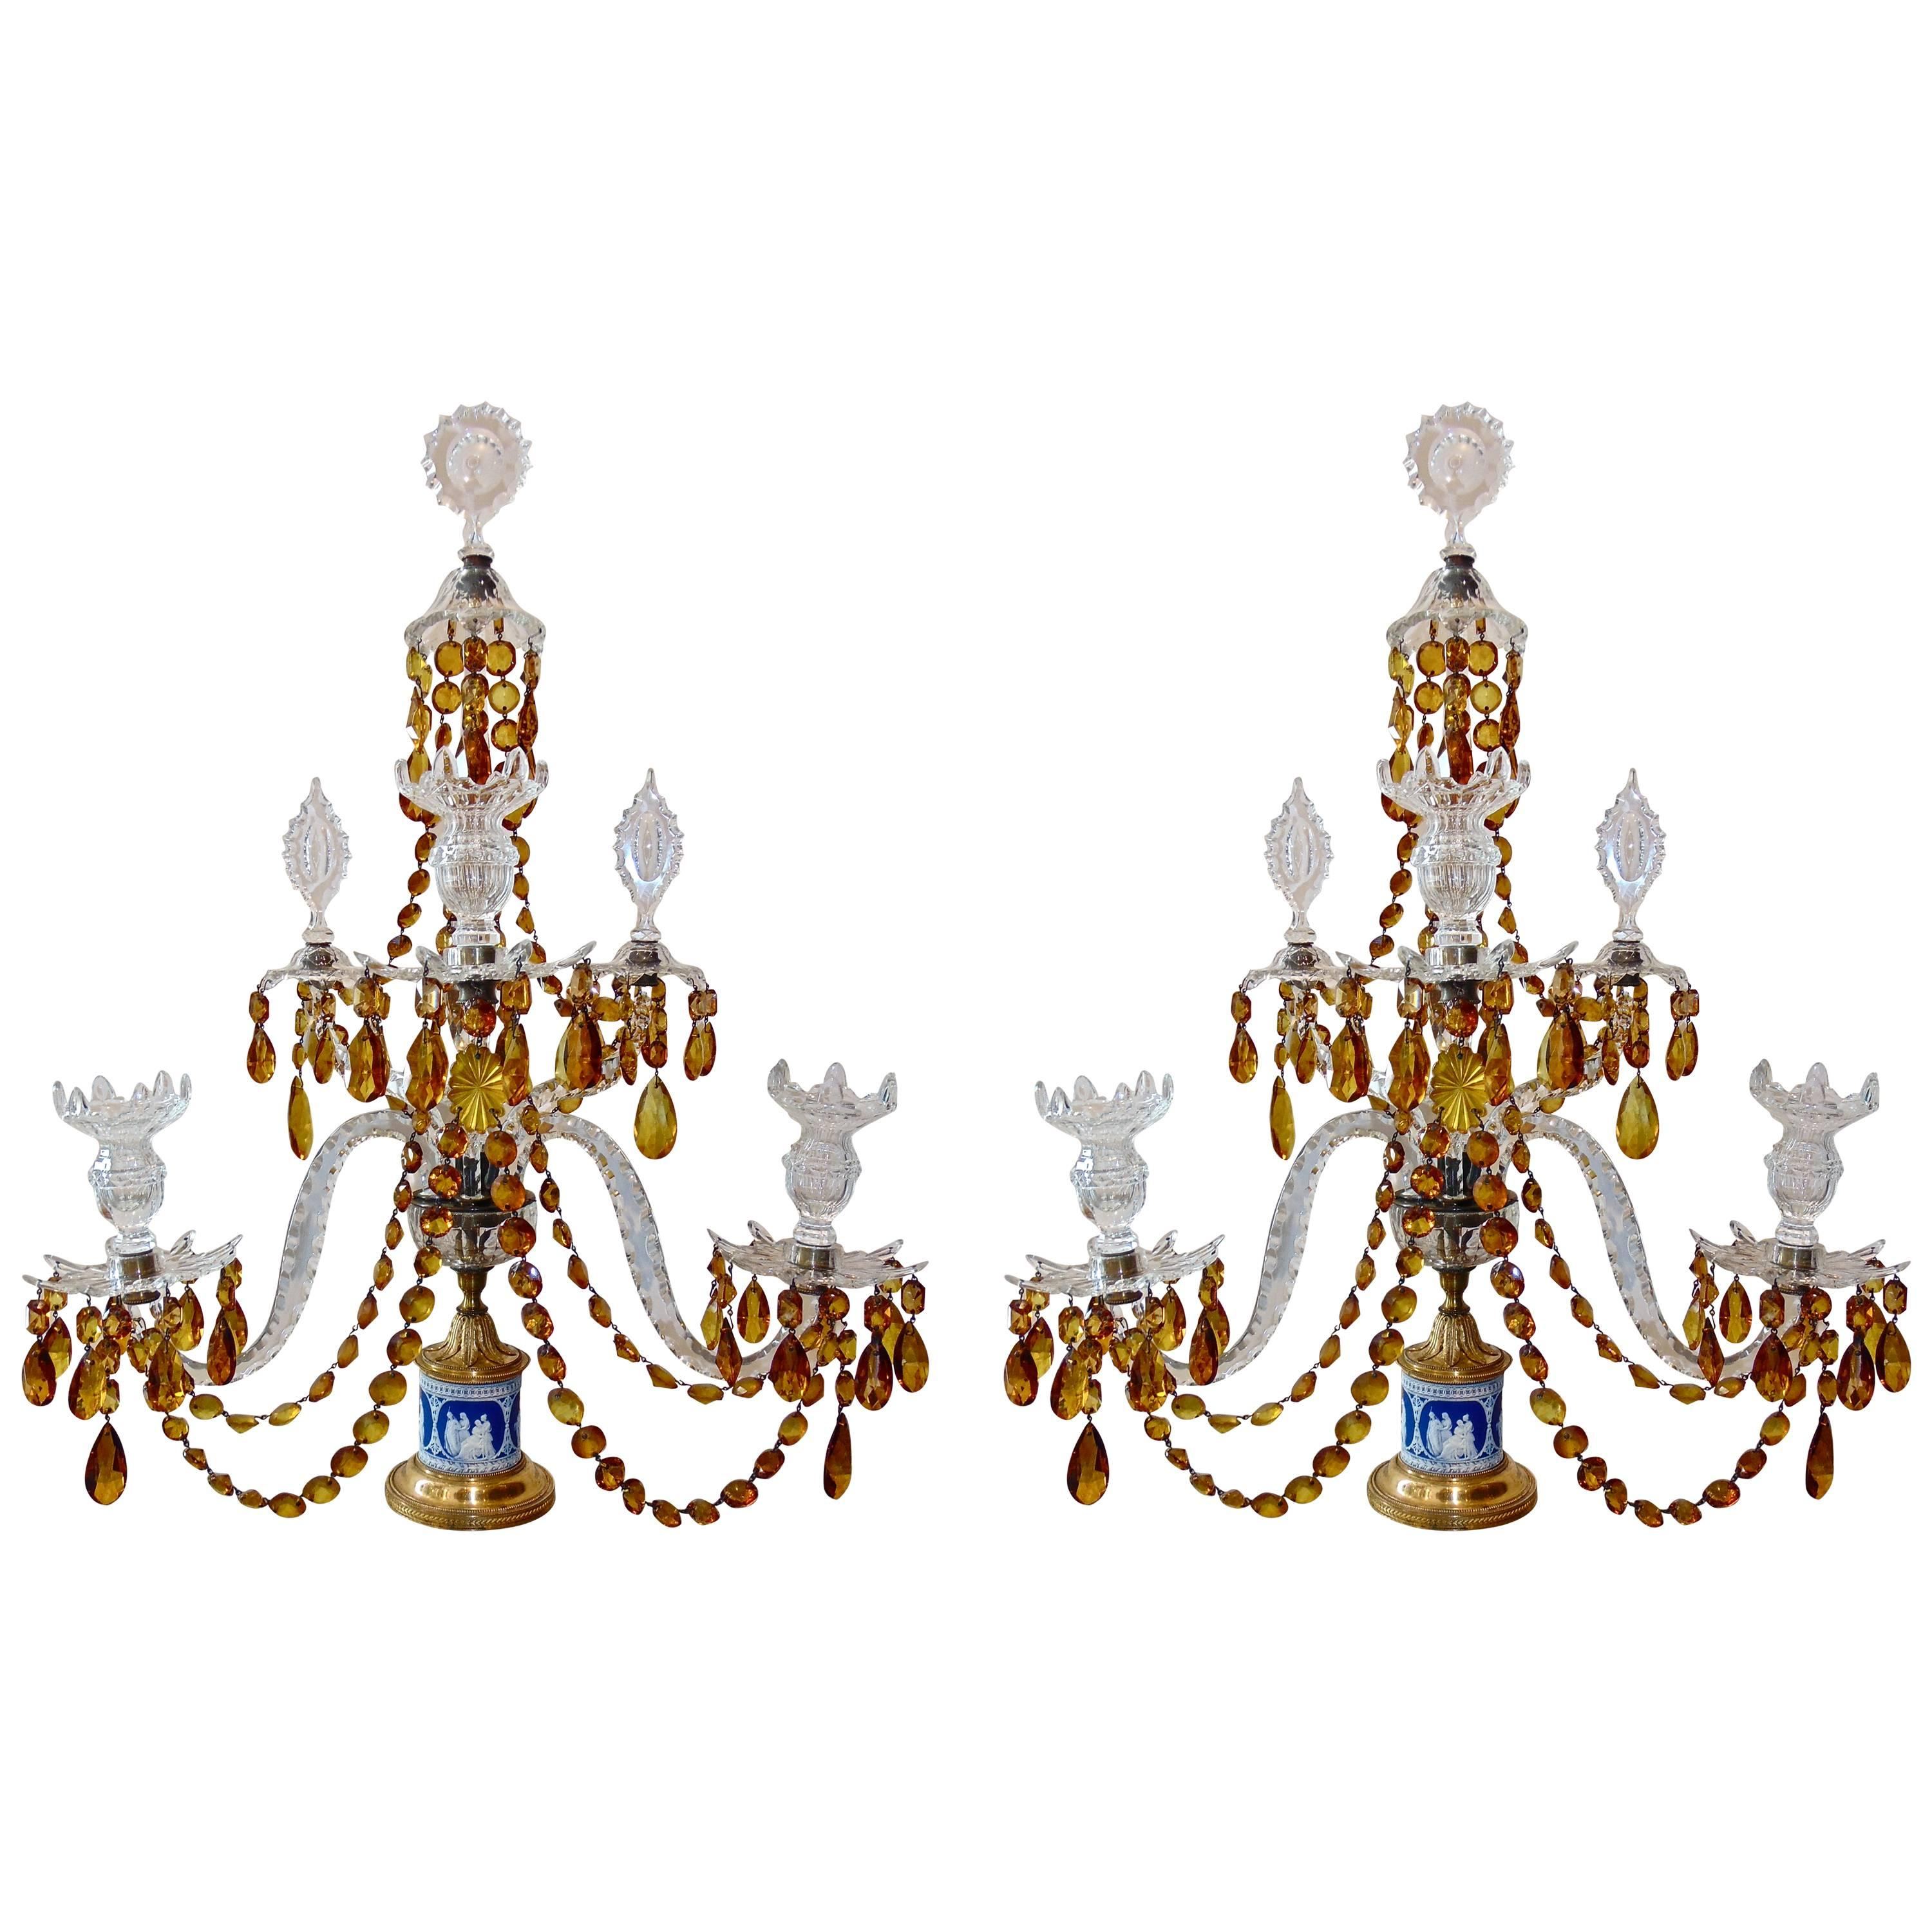 metal bronze all crystal exciting gold plus end select at light browse white from manufacturers with wall chandeliers delivery on beautiful bohemian types and highest over luxurious the antique free website brass roof lamps chandelier